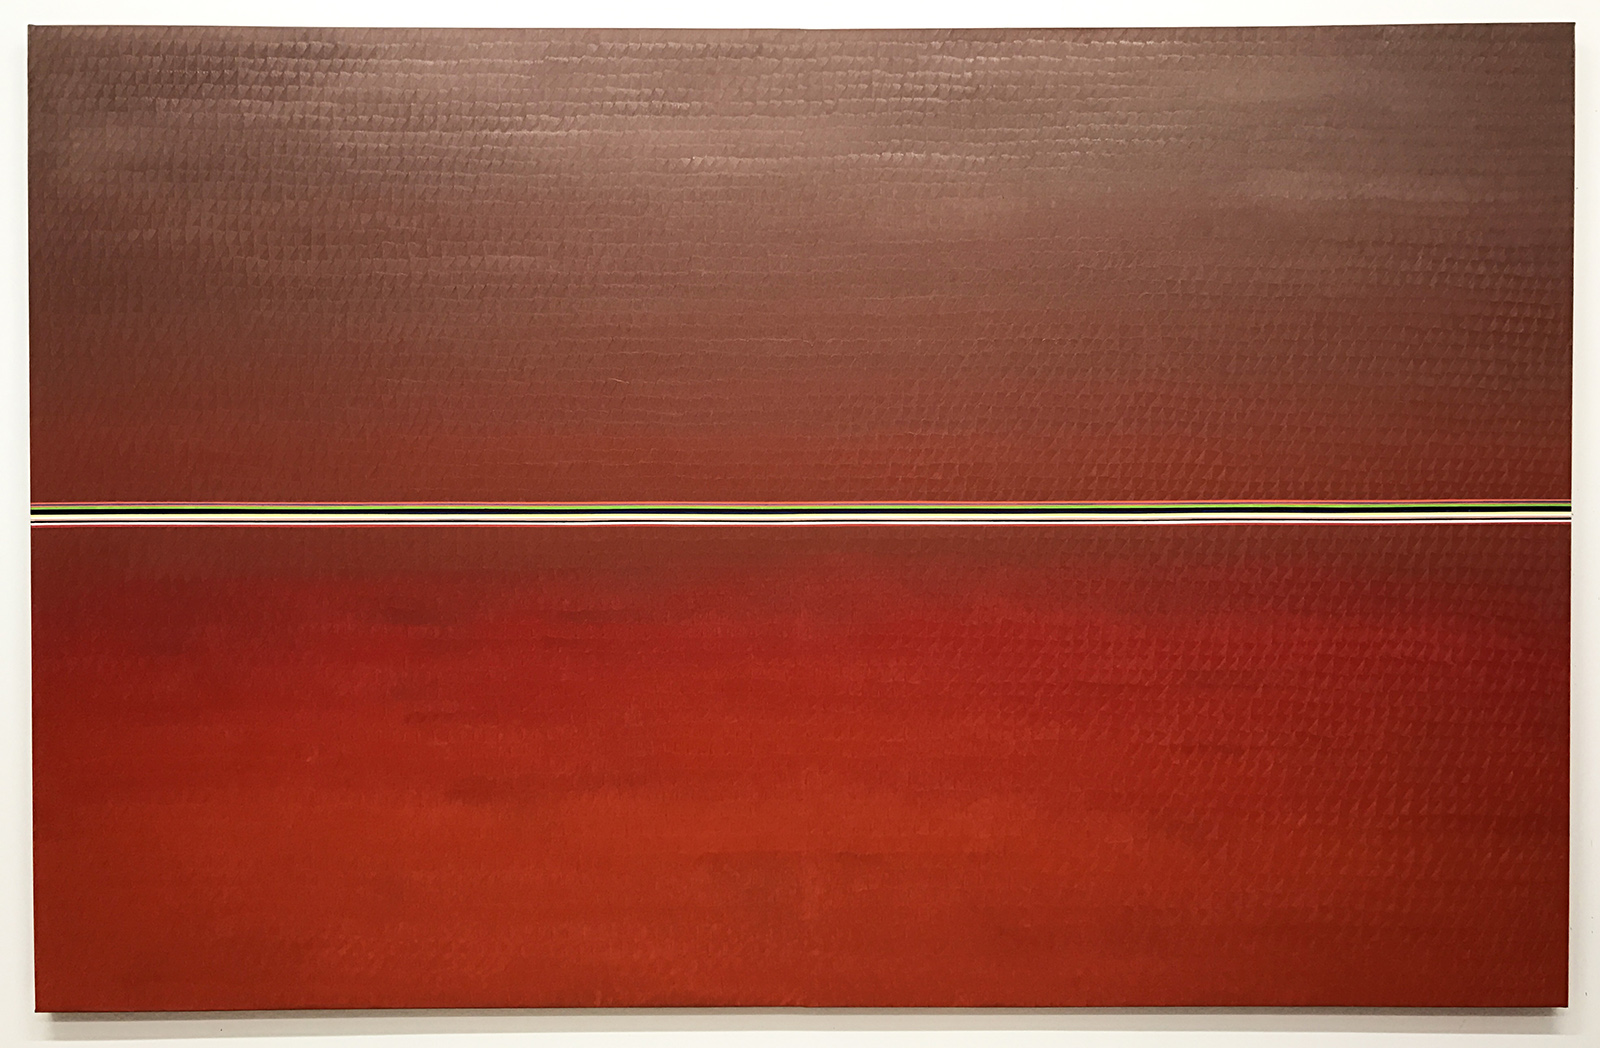 Redland 2 -oil on canvas 146 x 228 cm- 2017 (private collection, New York)